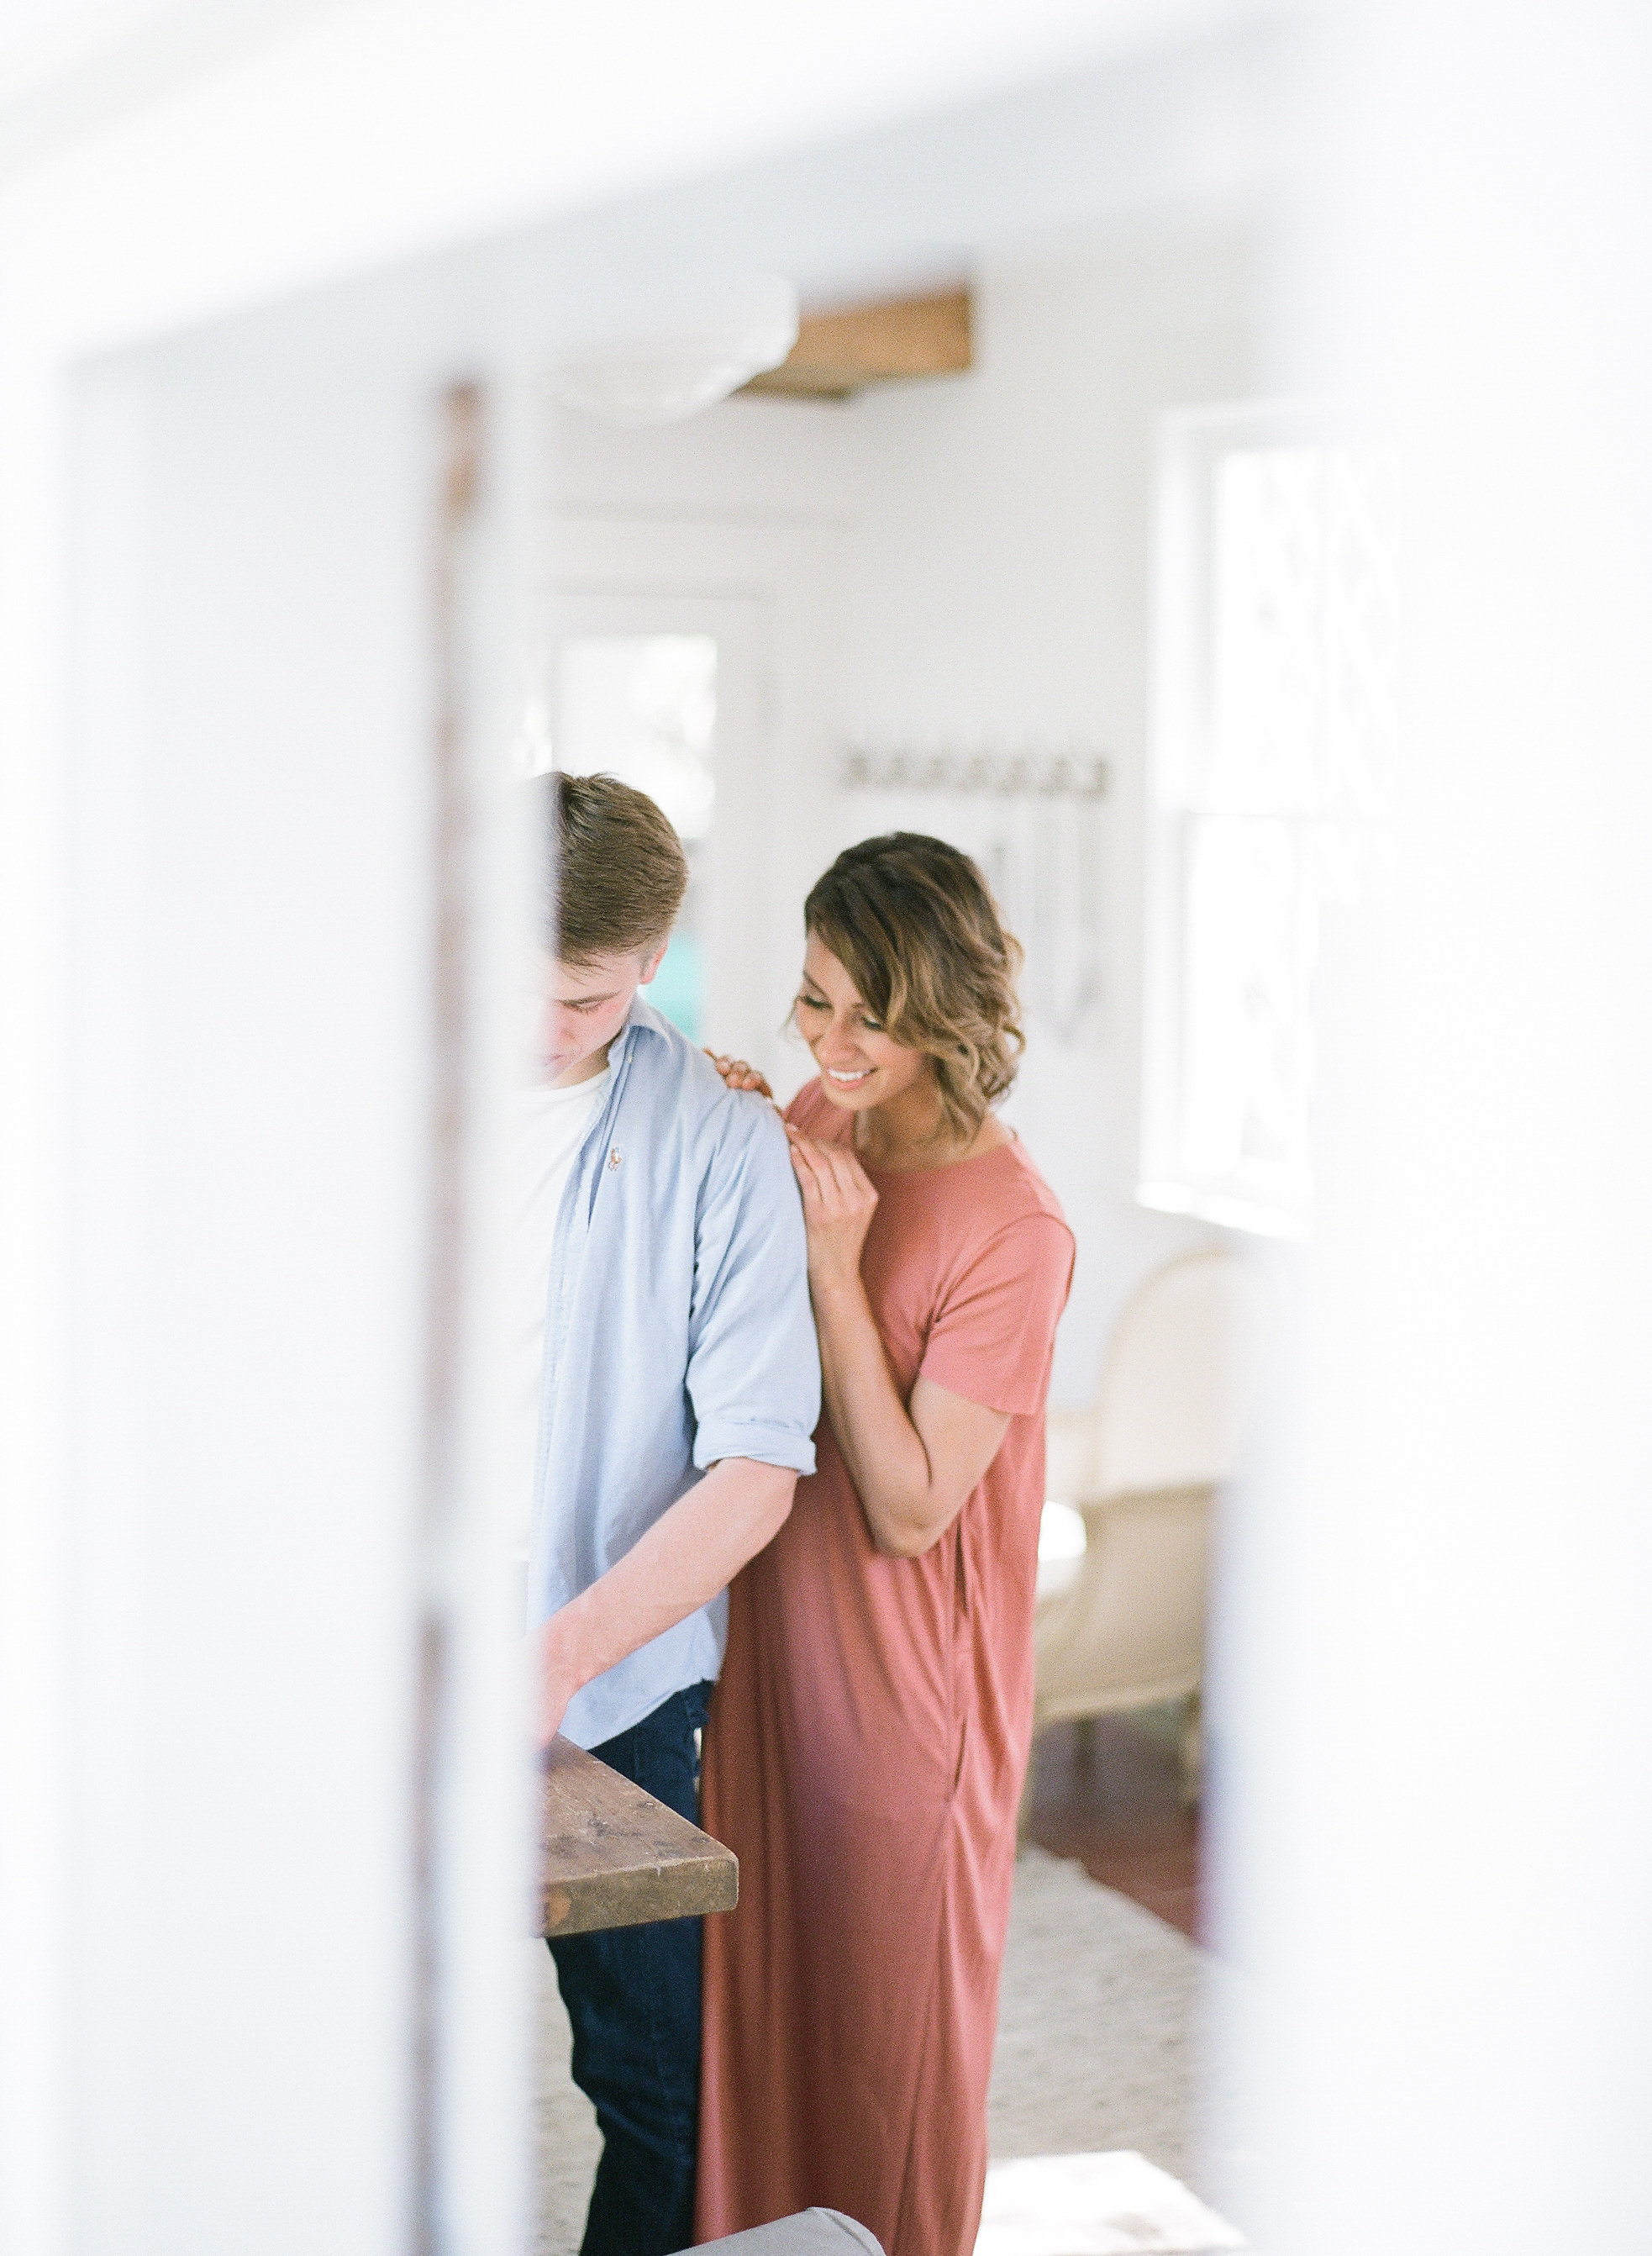 Fine_Art_Photographer_Kristen_Lynne_Photography_Engagement-Photo-10.jpg